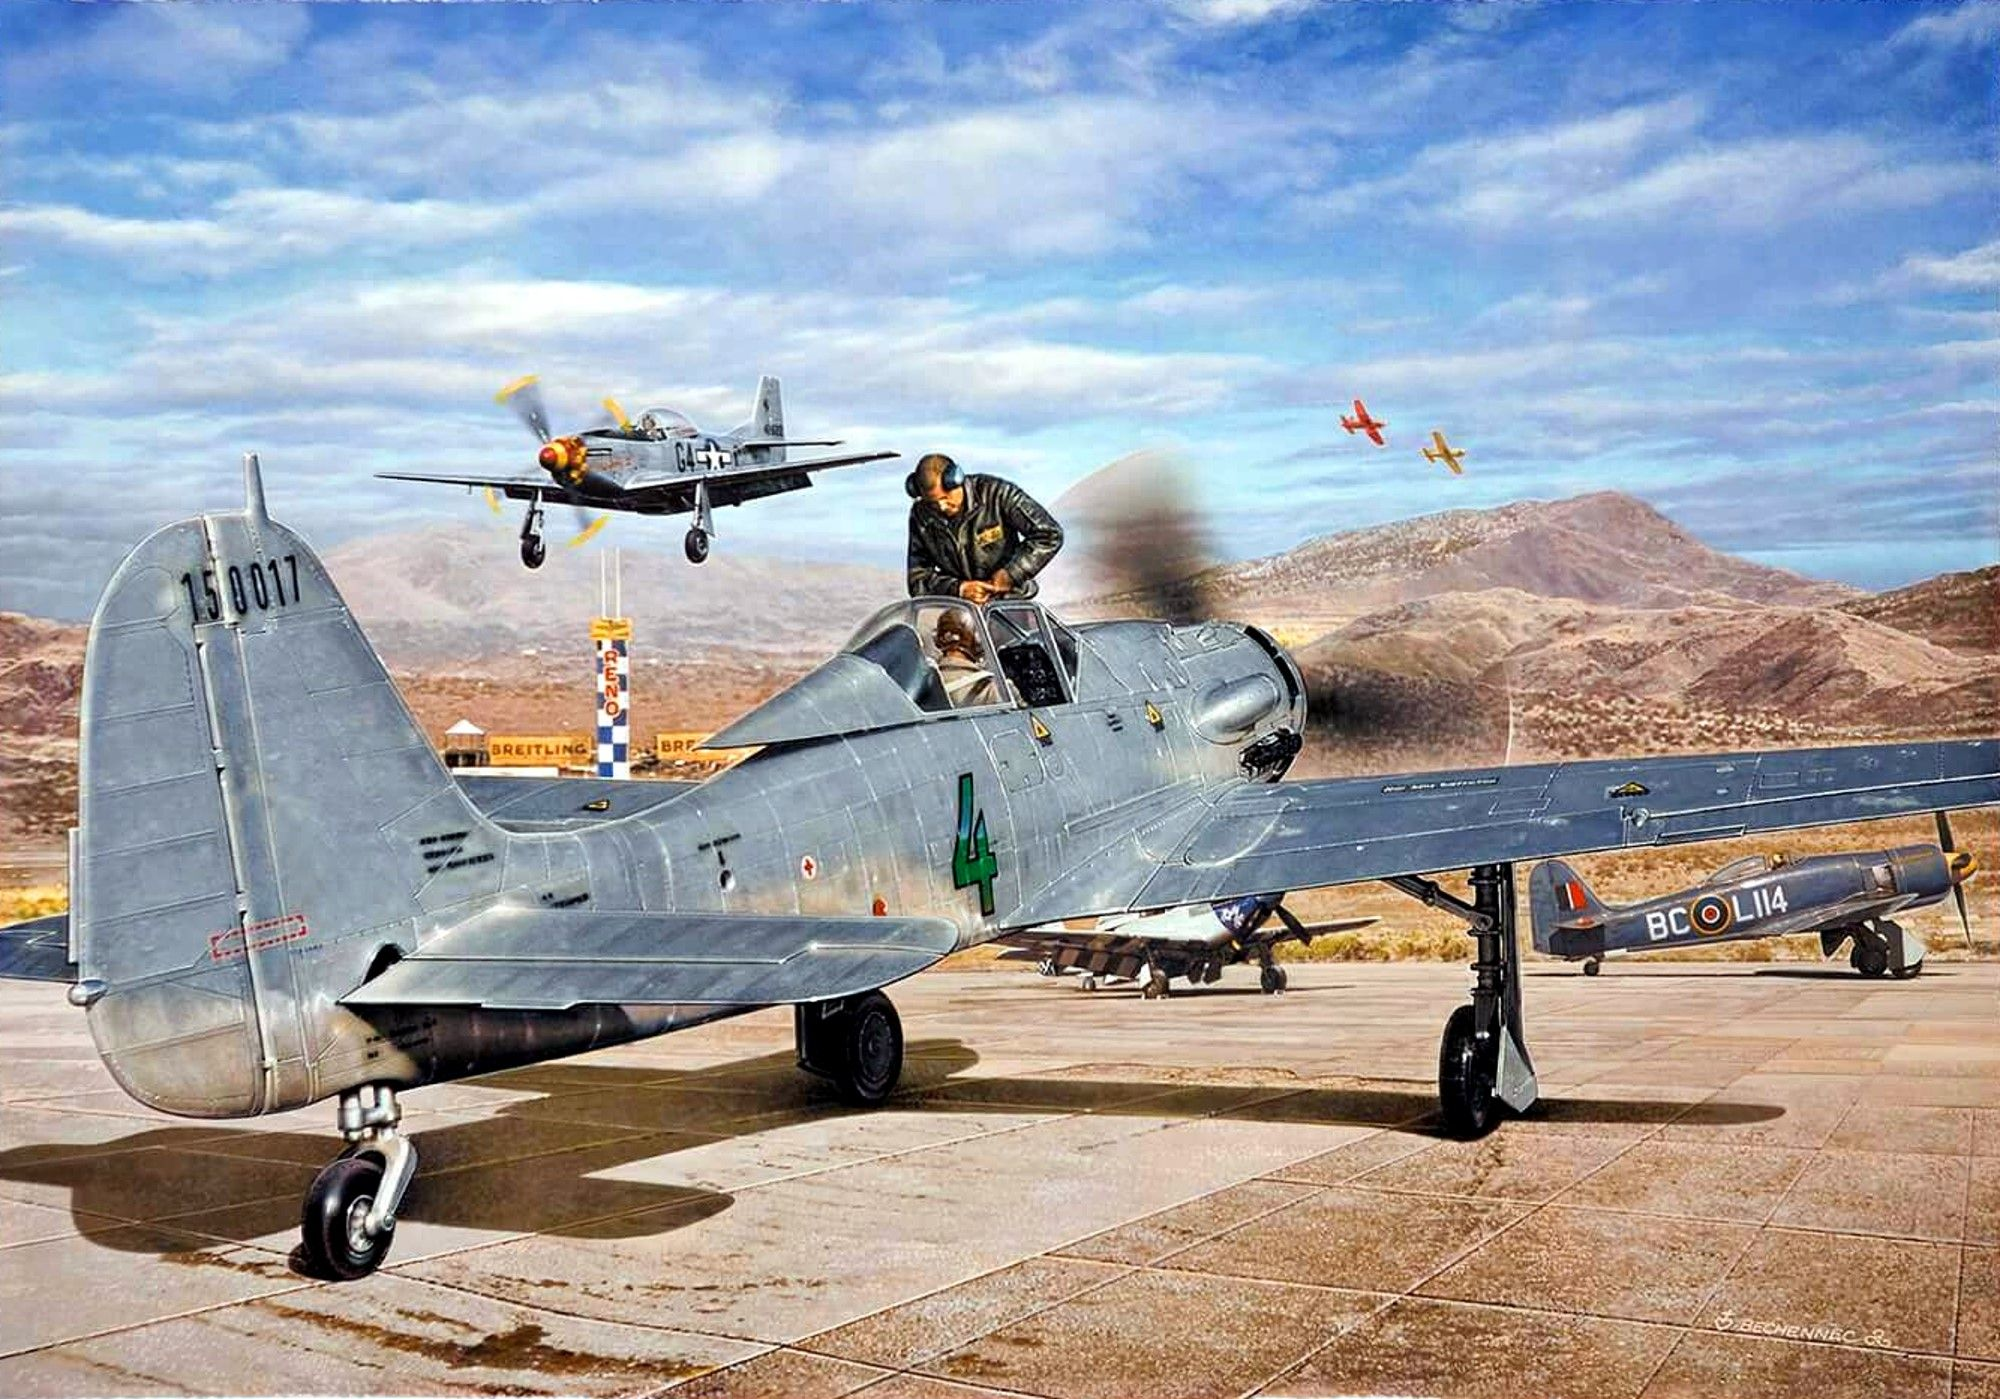 FW-190D Fighter and Fighter-Bomber - Luftwaffe